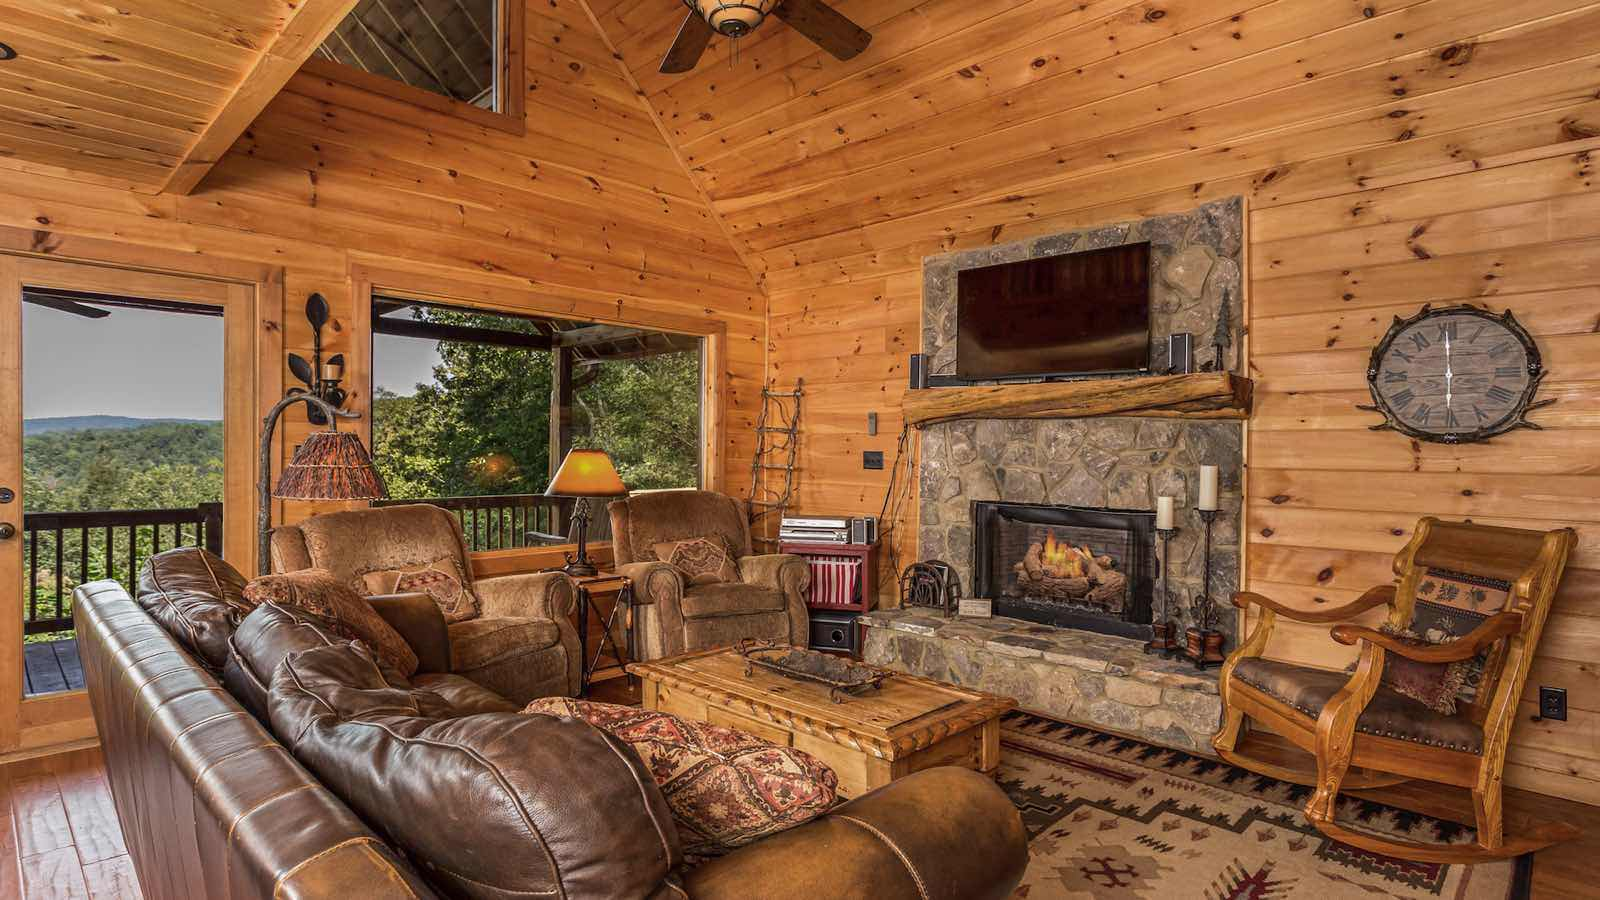 Downtown blue ridge ga lodging accommodations for Bear ridge cabin rentals